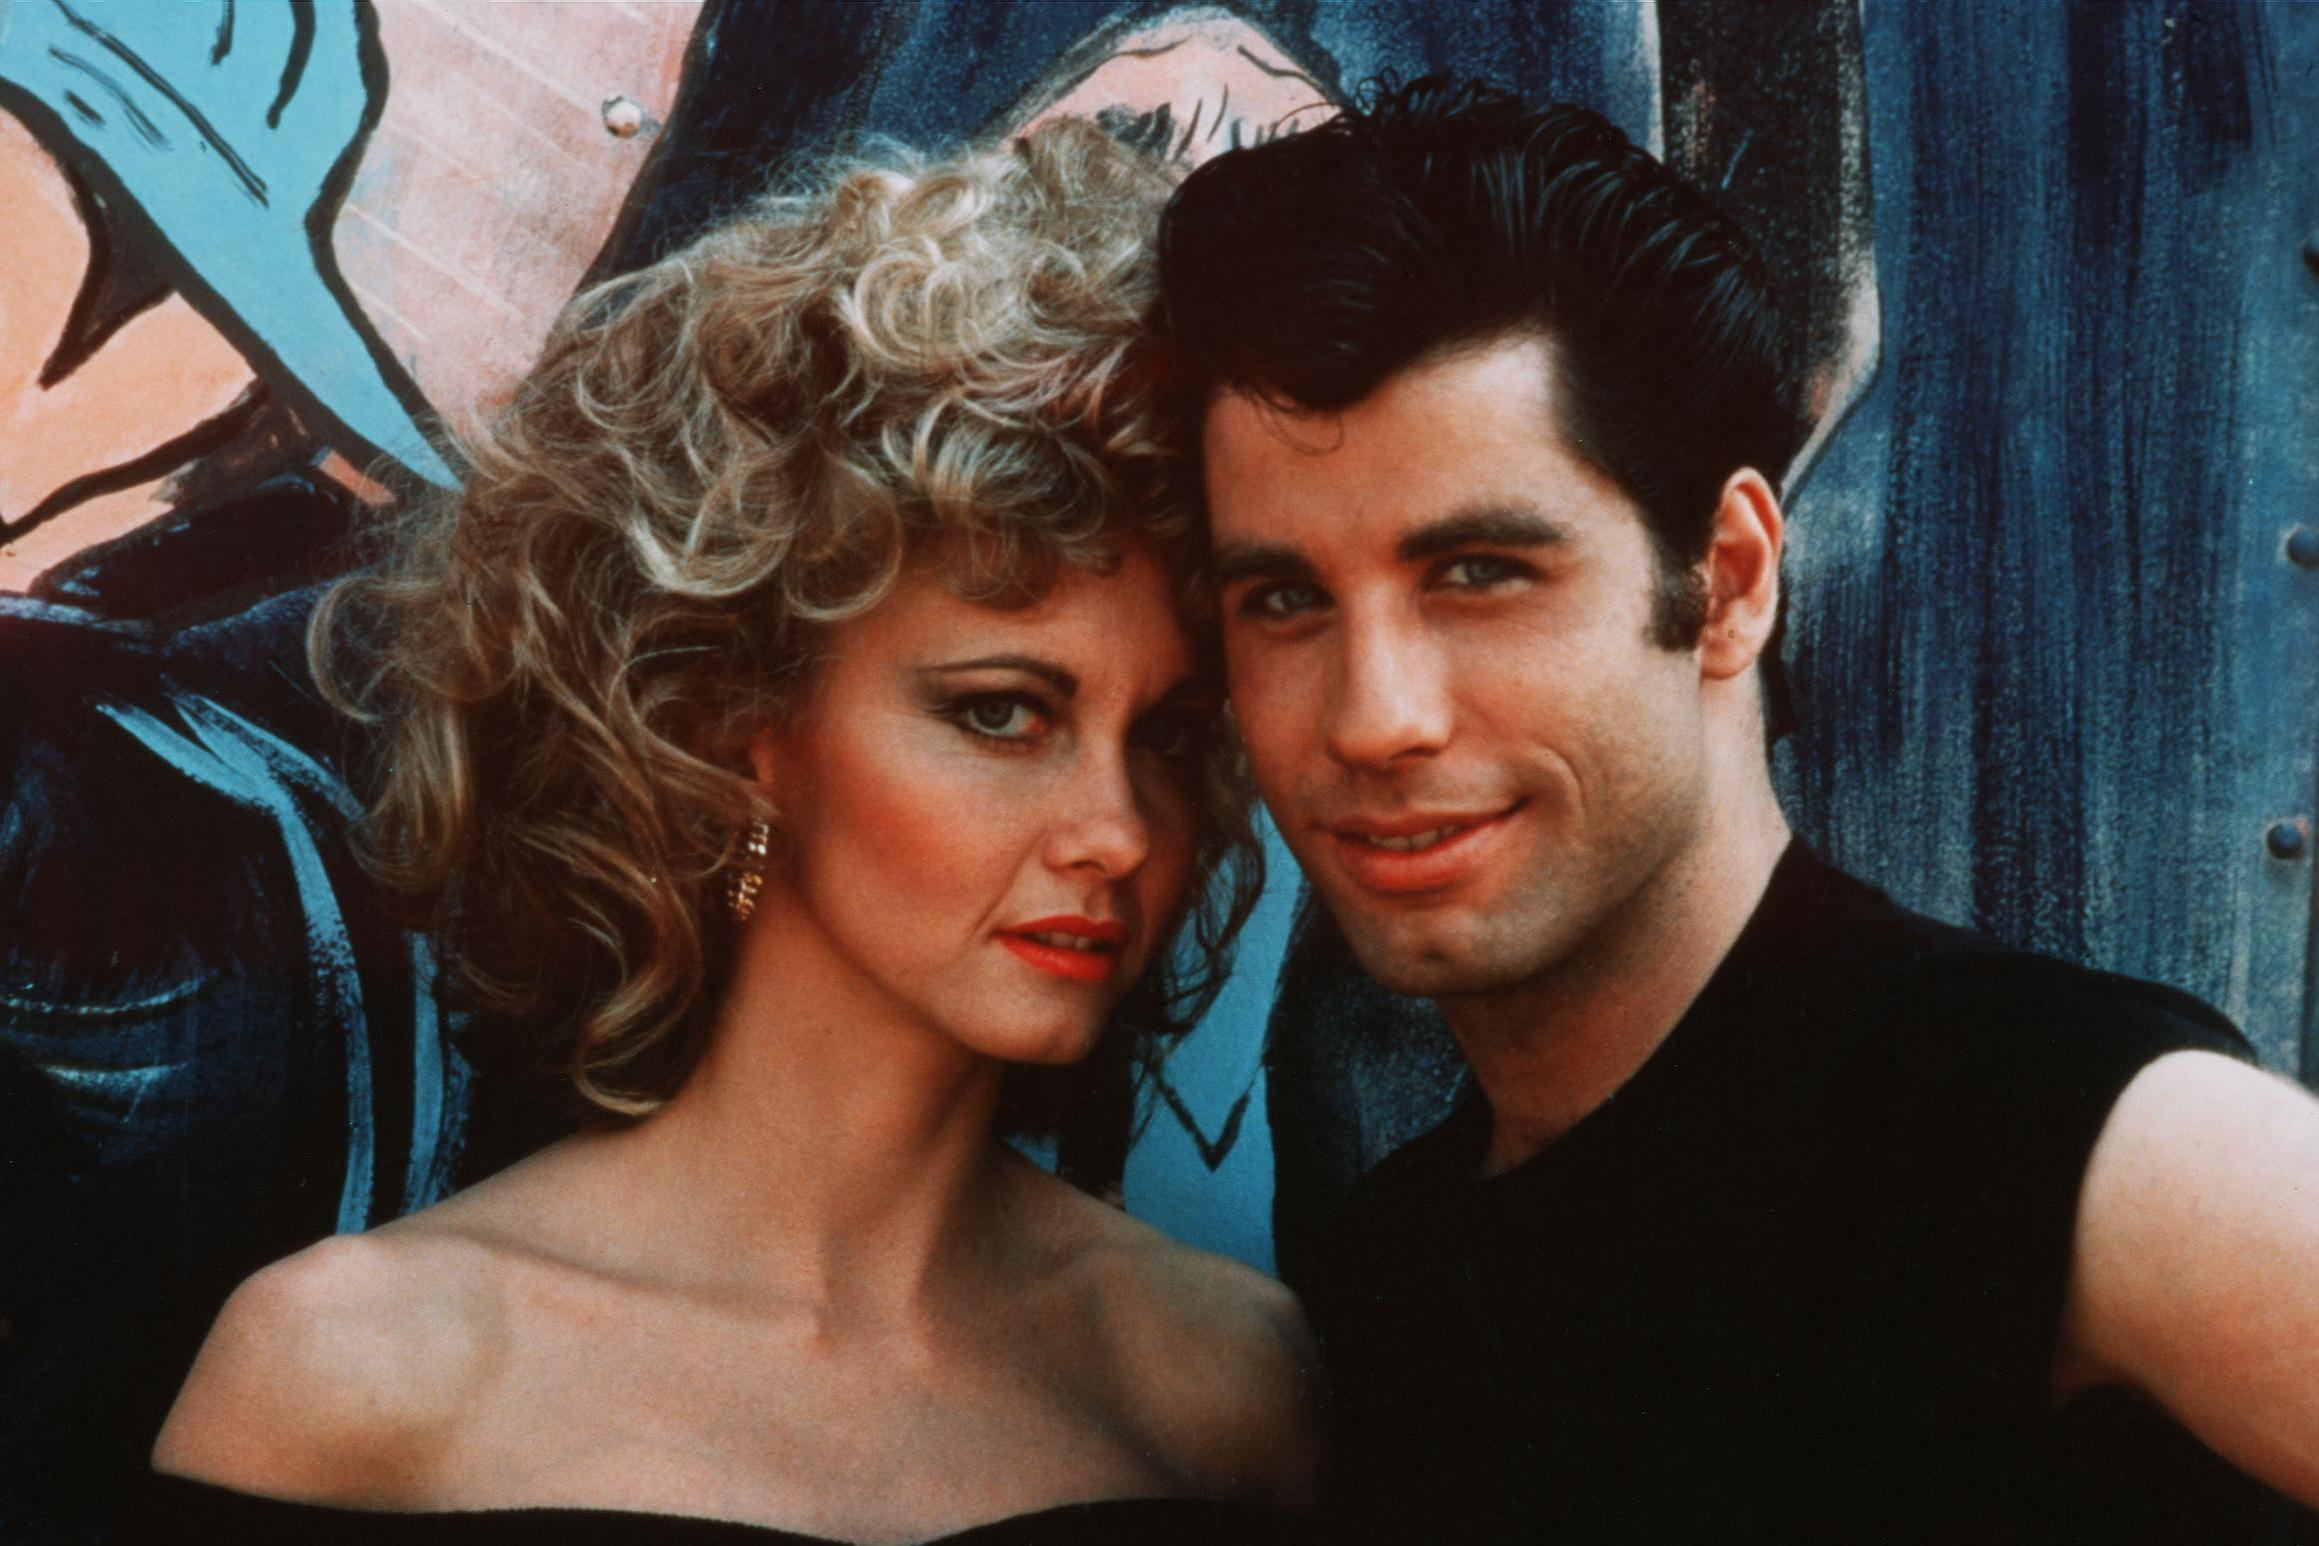 Olivia Newton-John and John Travolta recreate iconic Grease looks for the first time since 1978